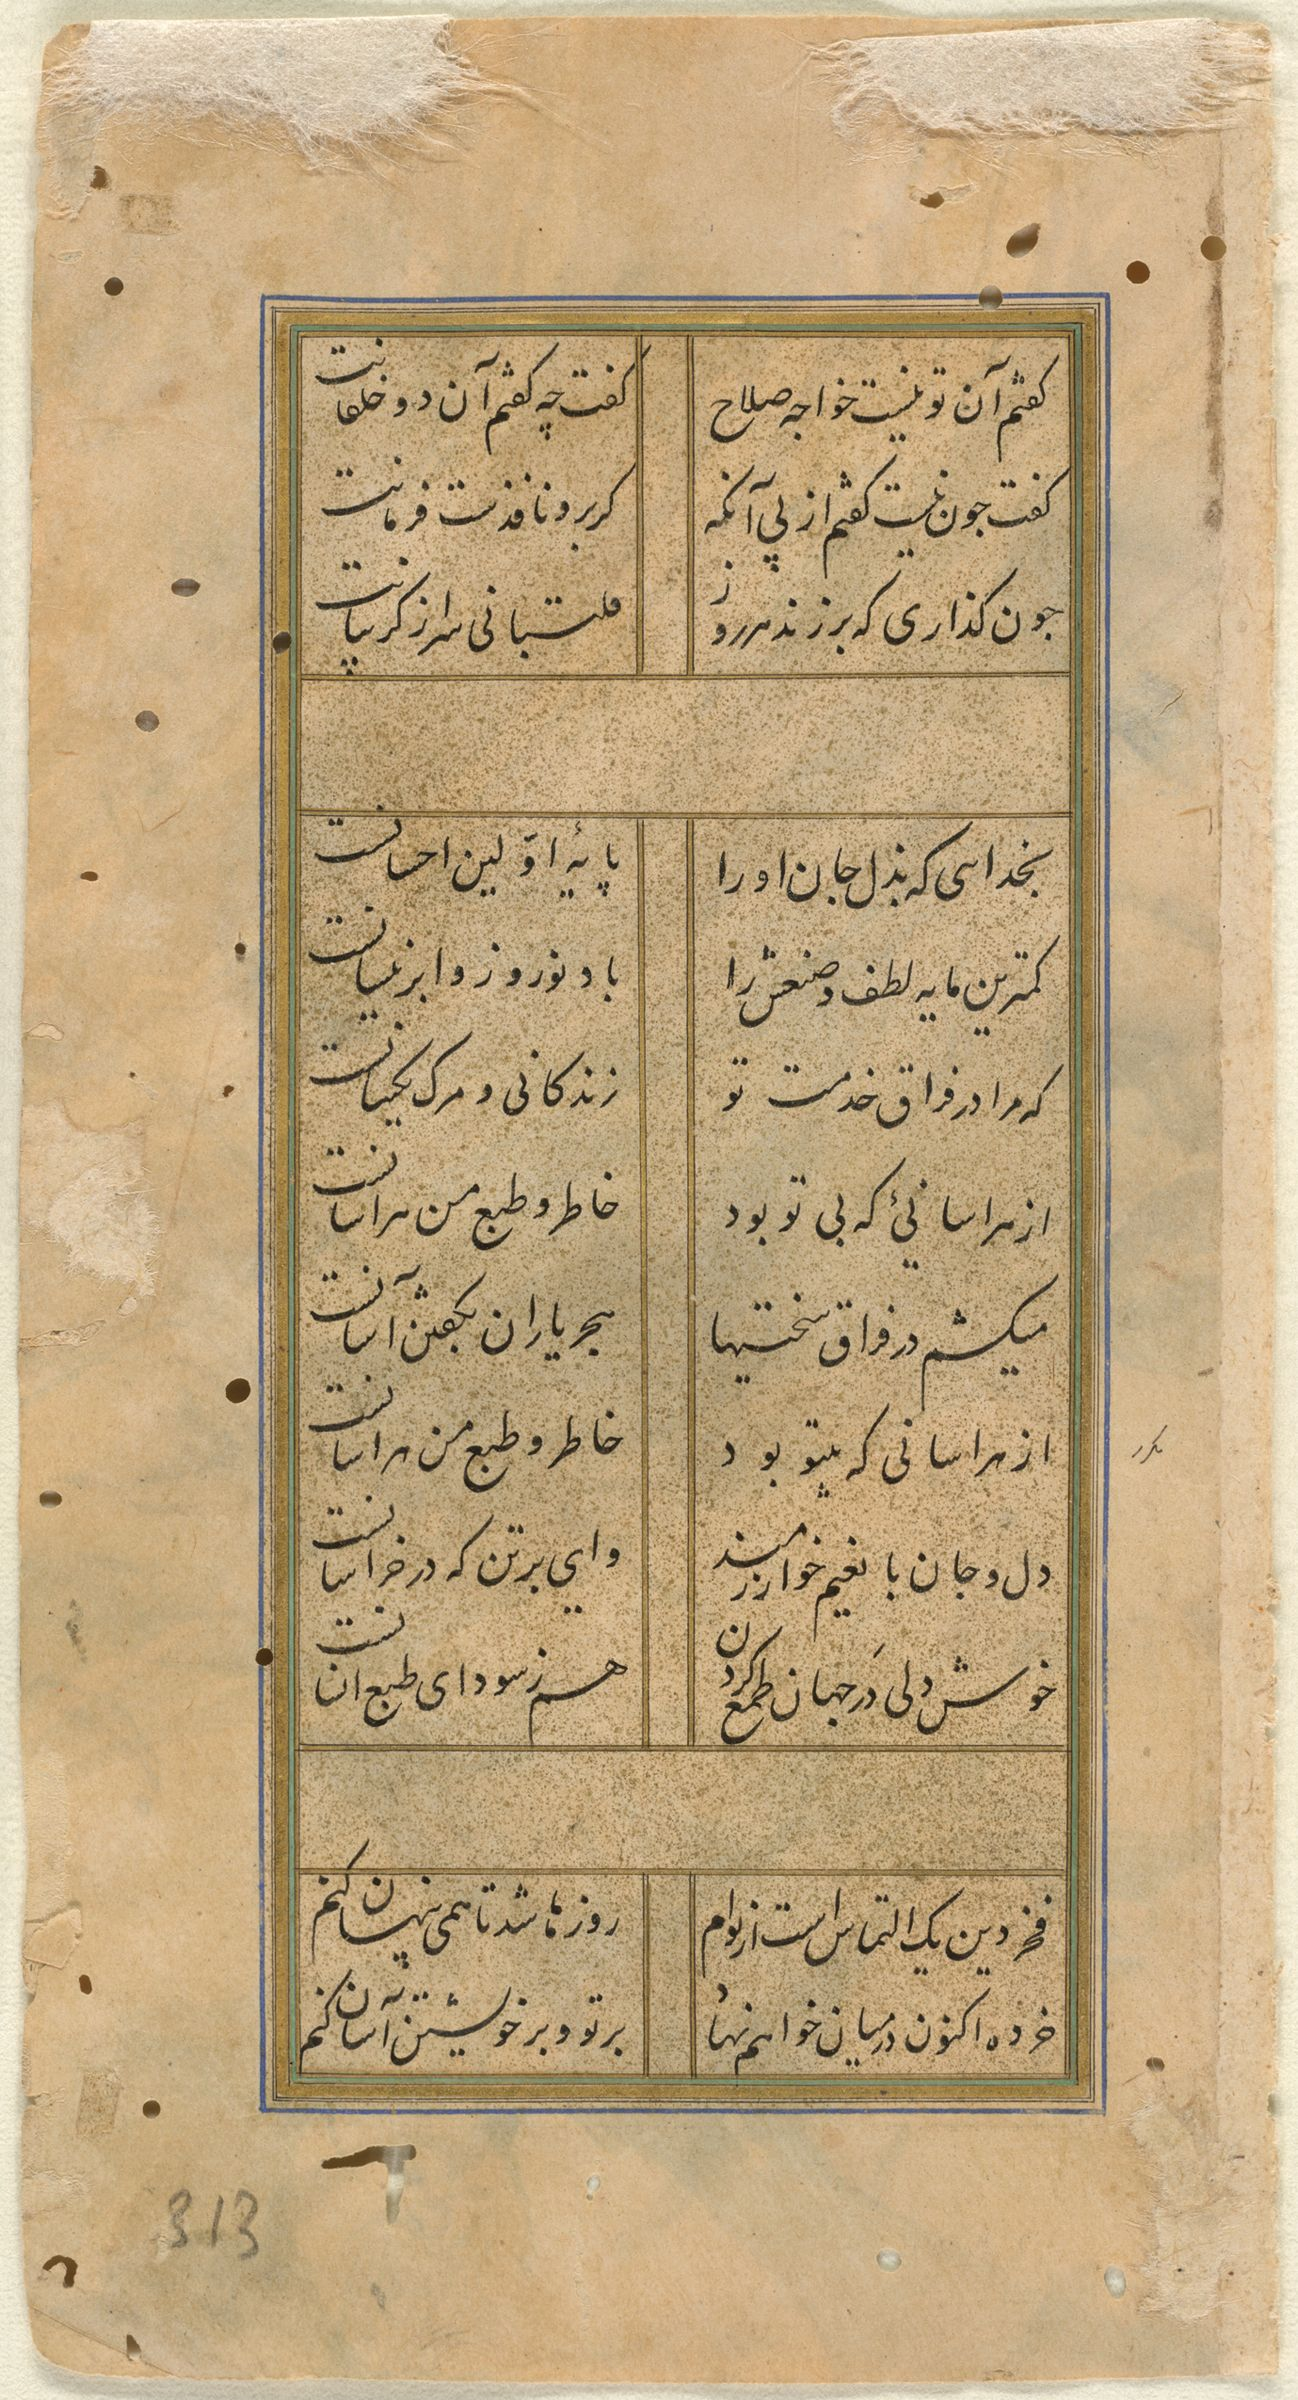 Folio 313 (Text, Recto And Verso), From A Manuscript Of The Divan Of Anvari